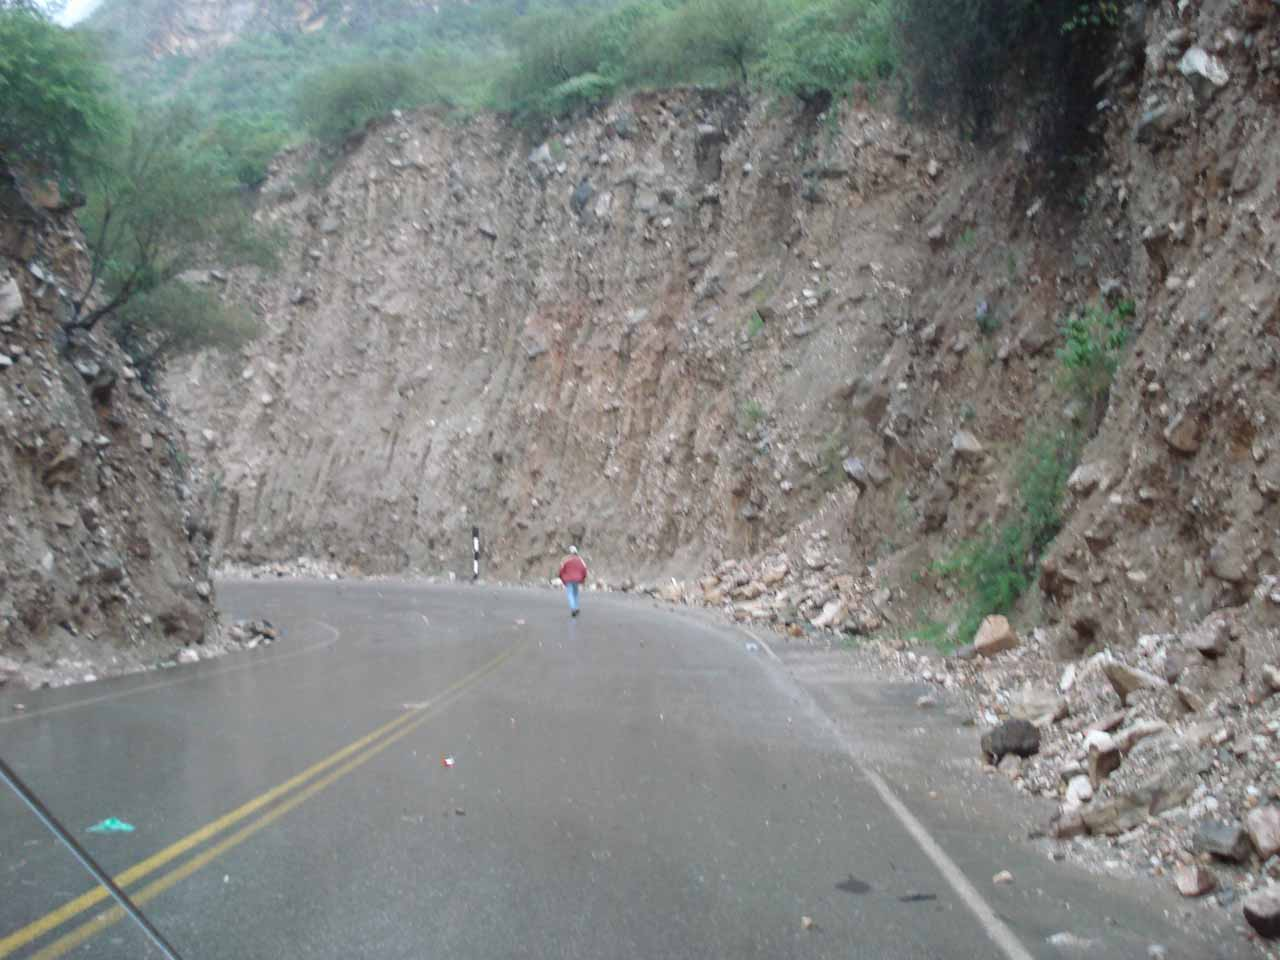 Checking for rock slides around the bend